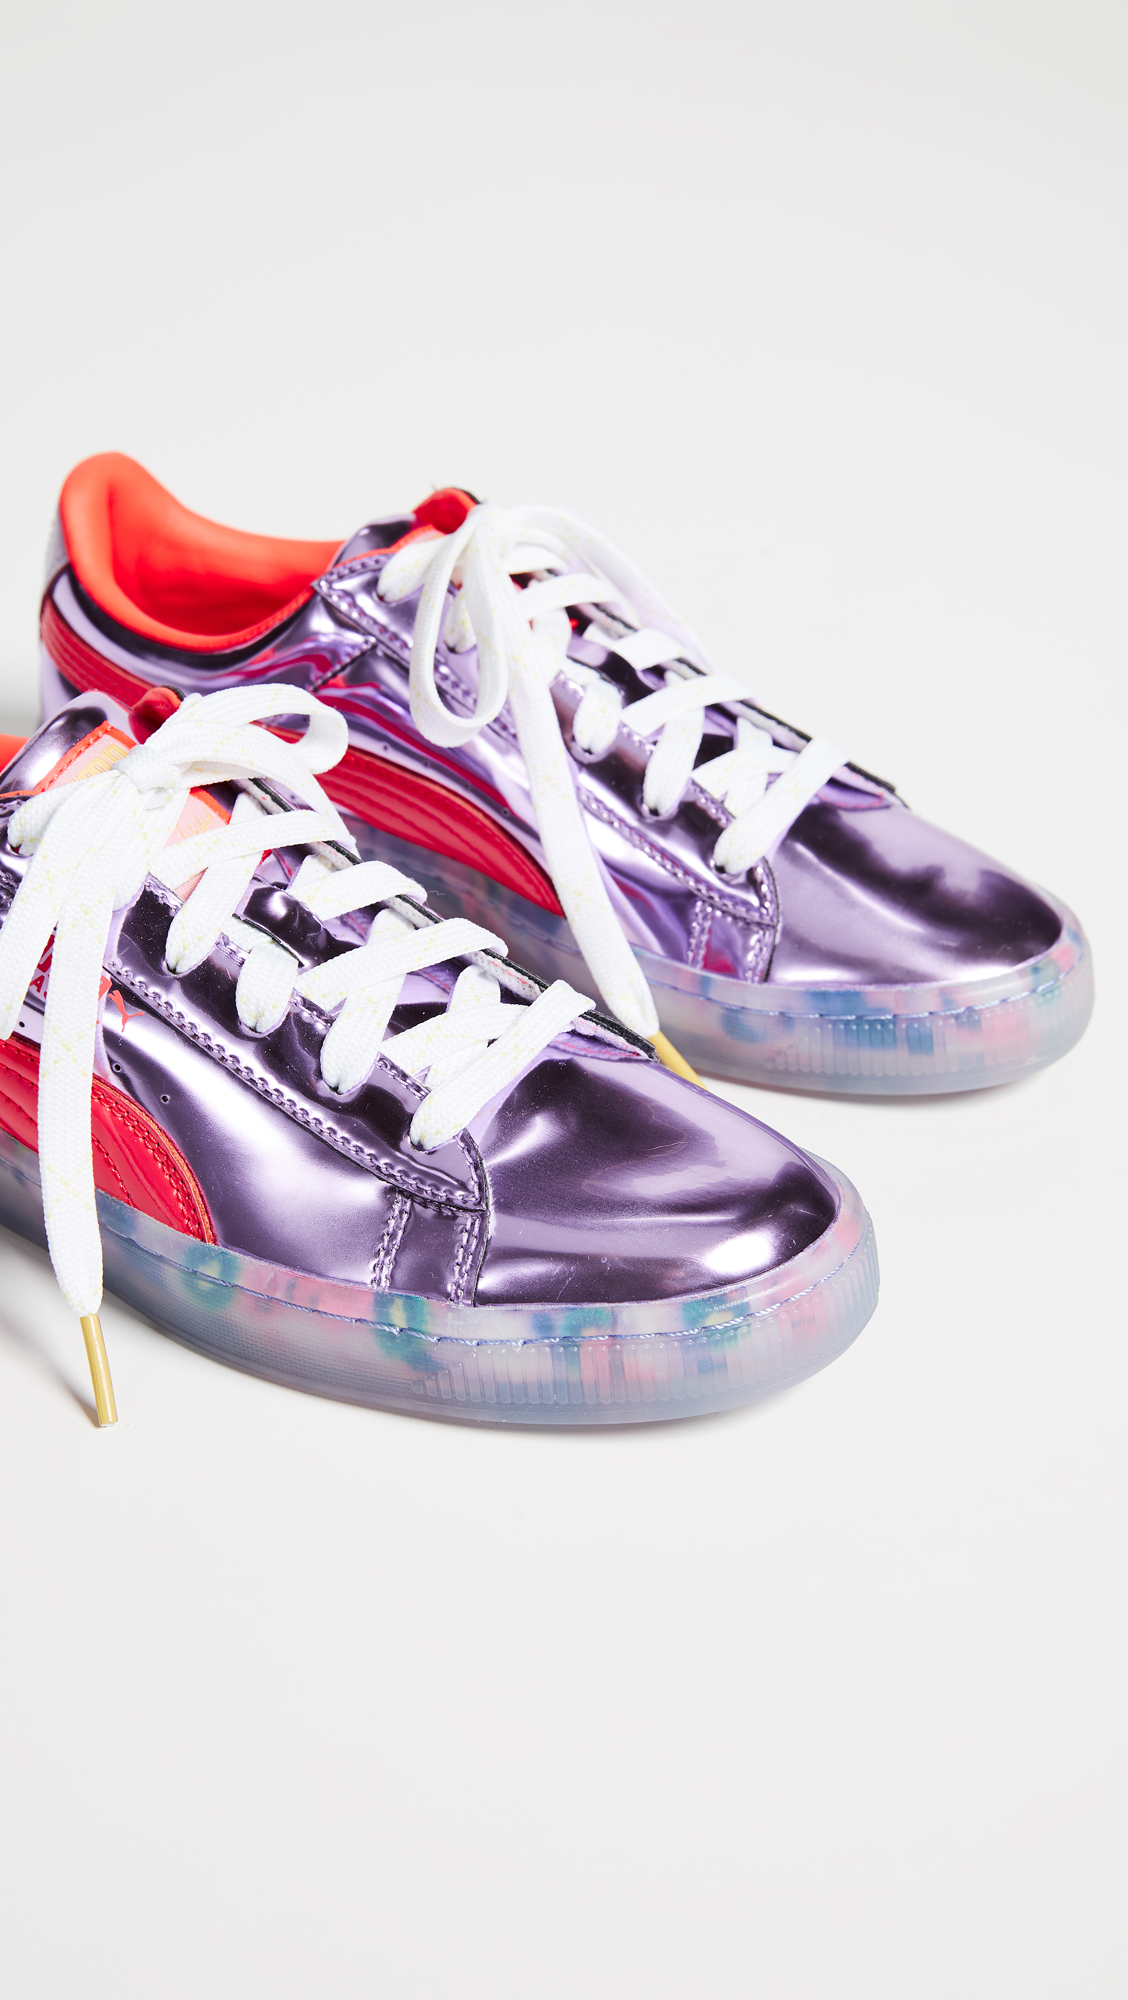 ed40169a34c PUMA x Sophia Webster Basket Candy Princess Sneakers